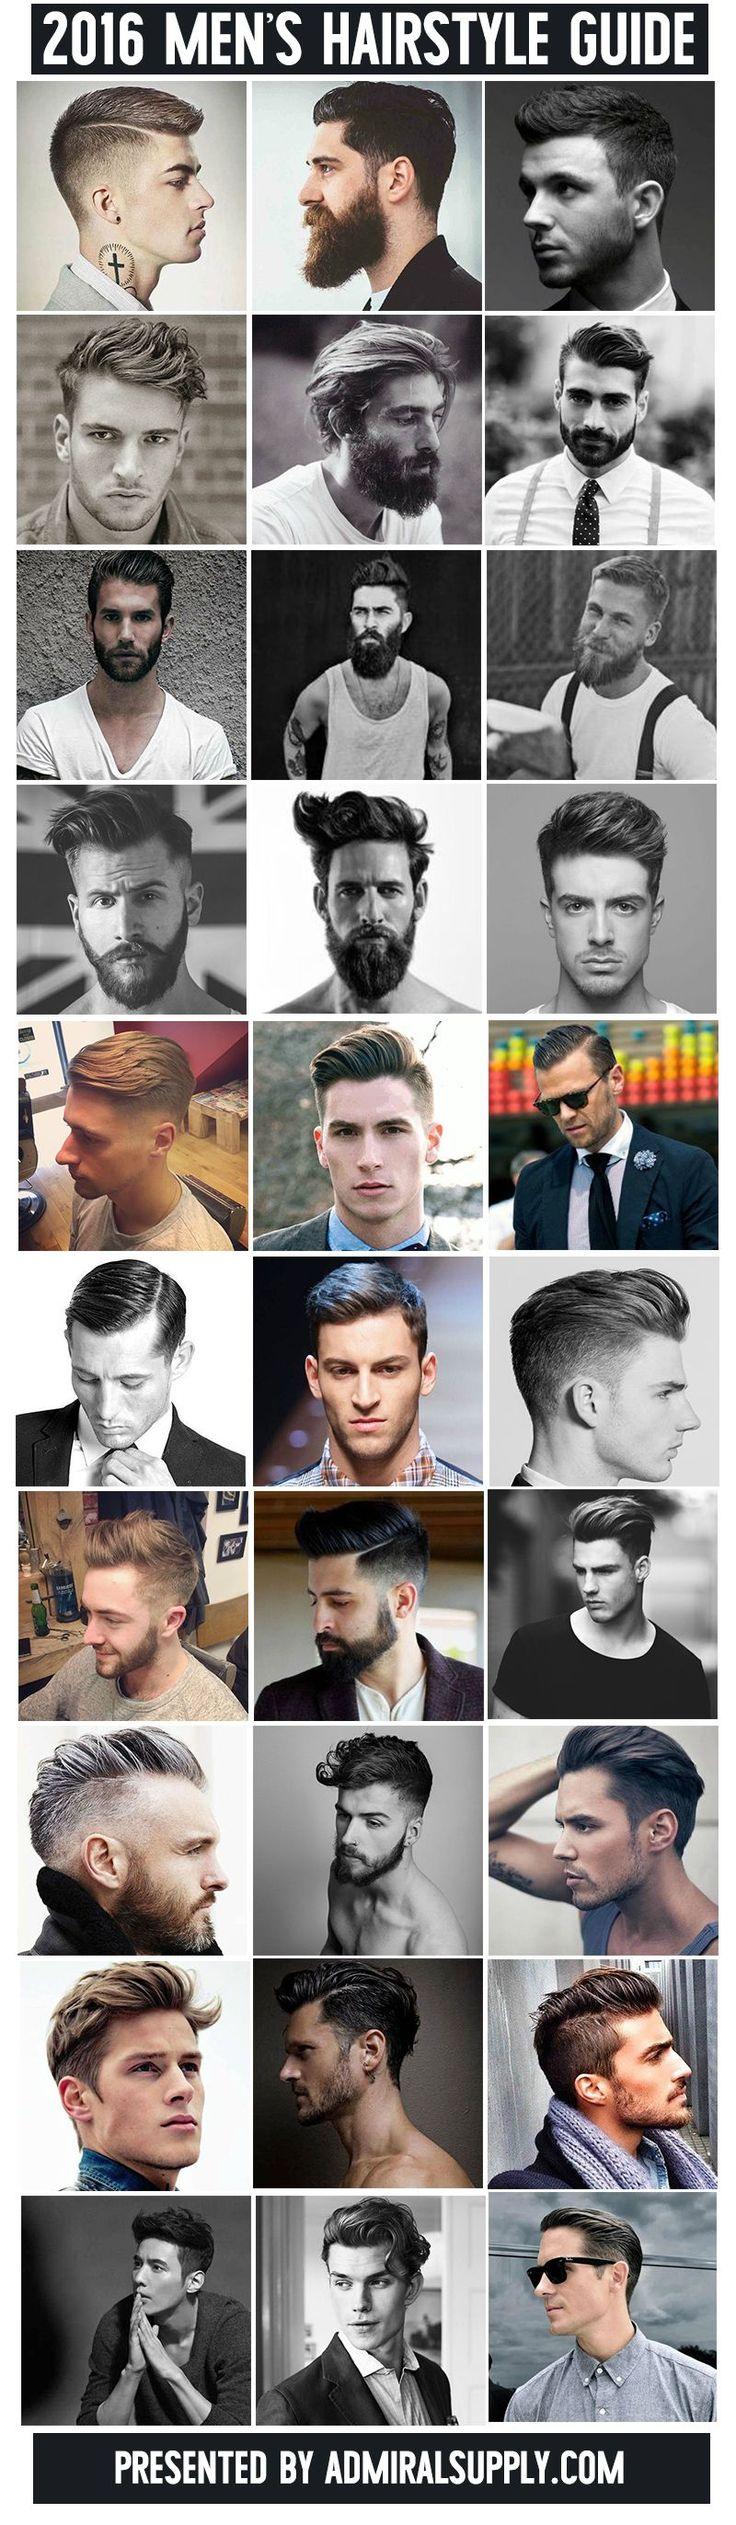 Guide to mens haircuts | beautiful people.